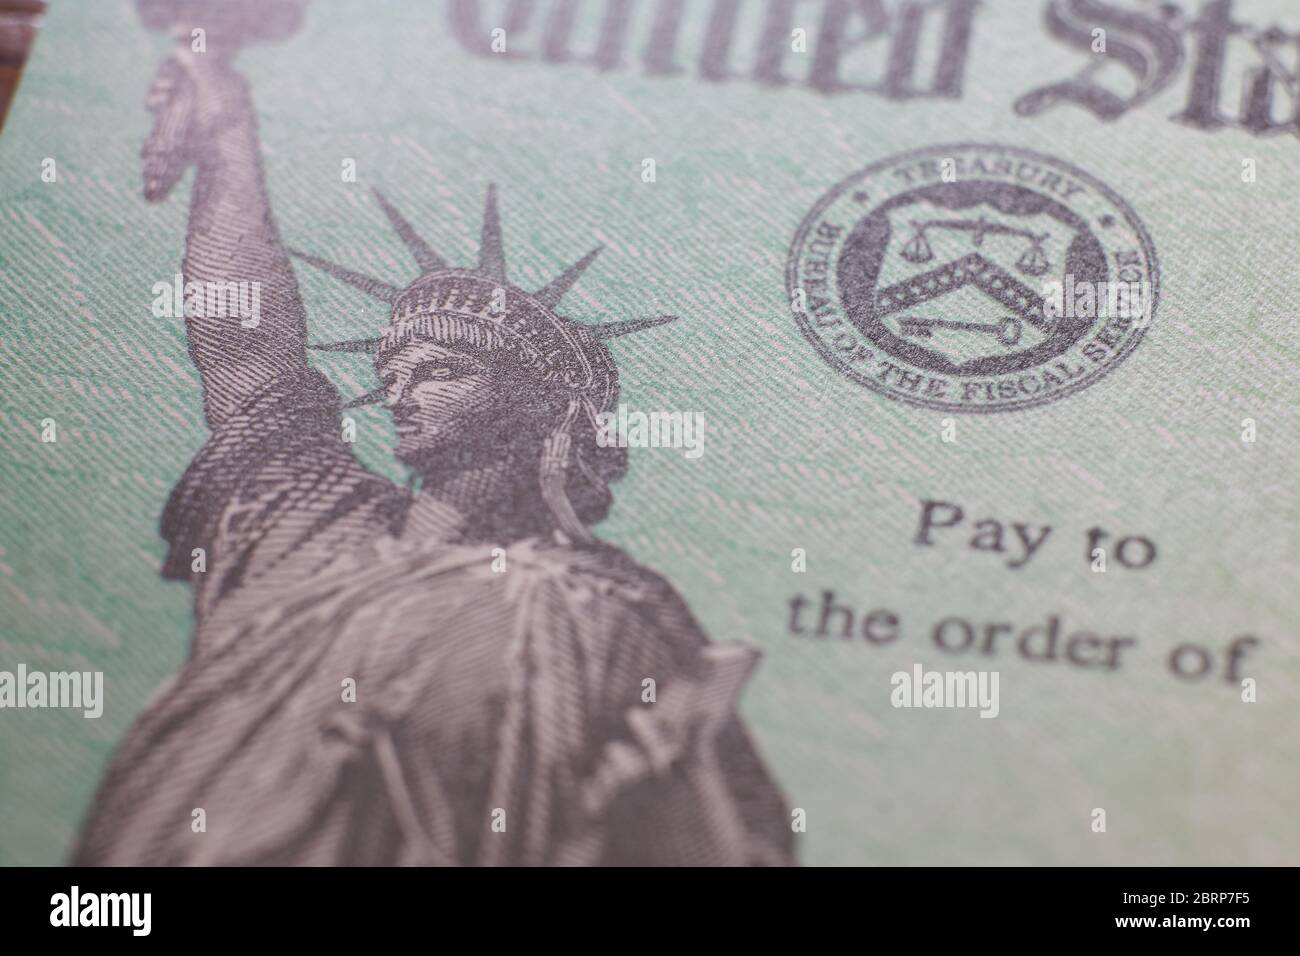 text-and-statue-of-liberty-logo-on-the-economic-impact-payment-relief-from-covid-19-pandemic-cheque-check-from-the-us-treasury-2BRP7F5.jpg